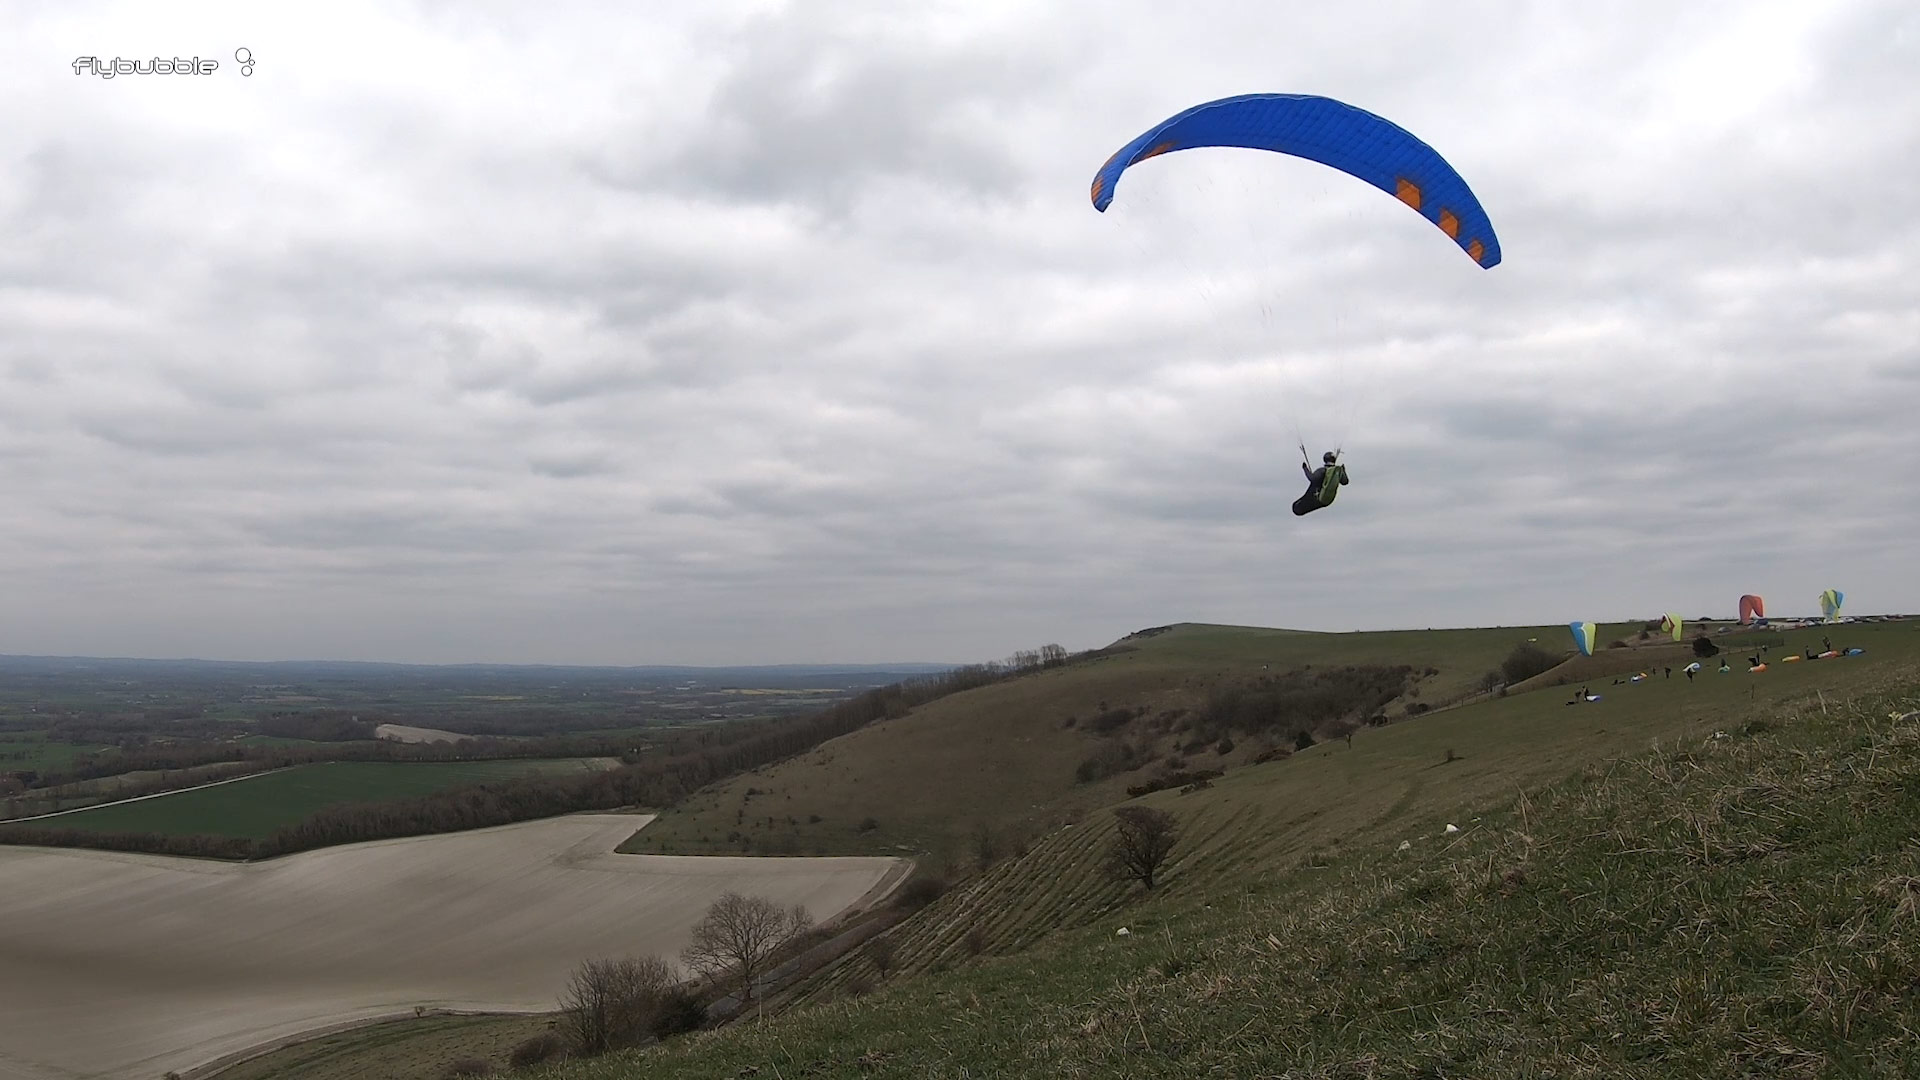 Phi MAESTRO paraglider review - gliding